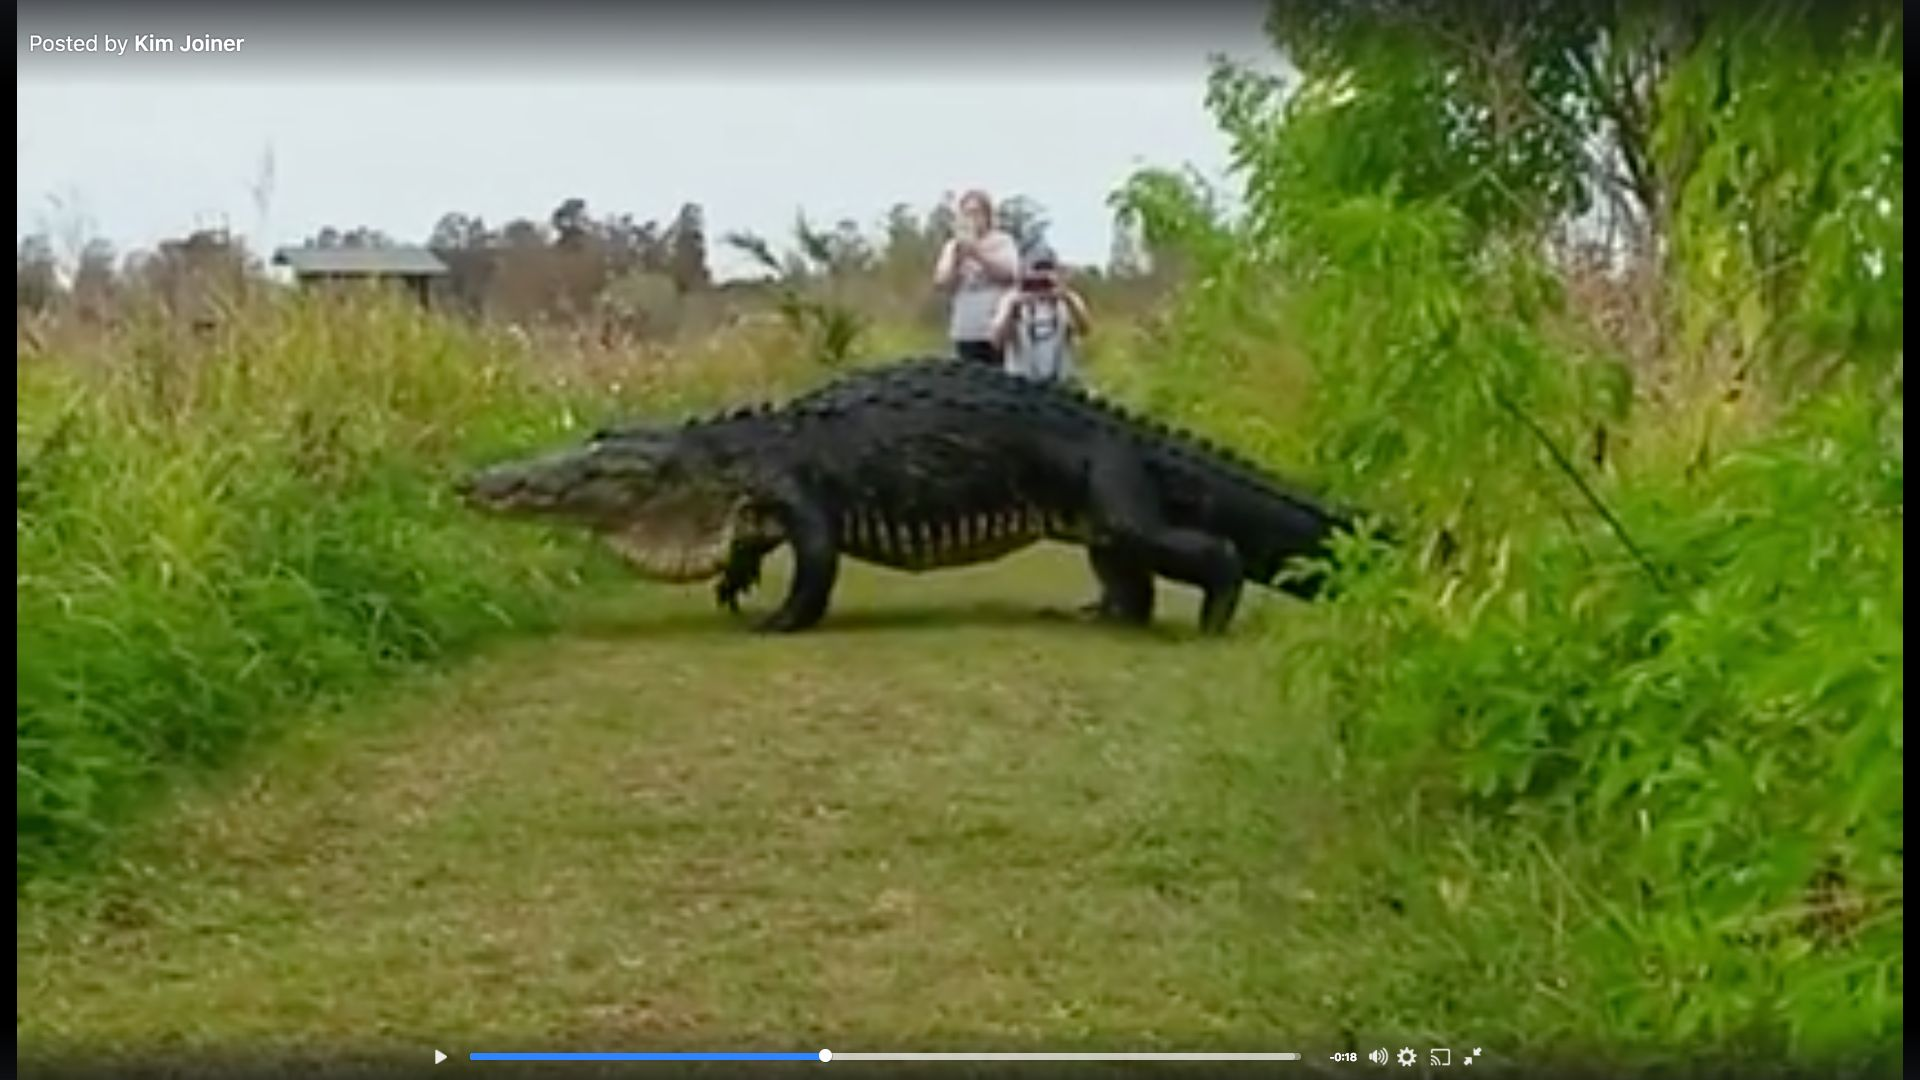 People in Floridagot an unexpected treat when this massive alligator crossed their path.